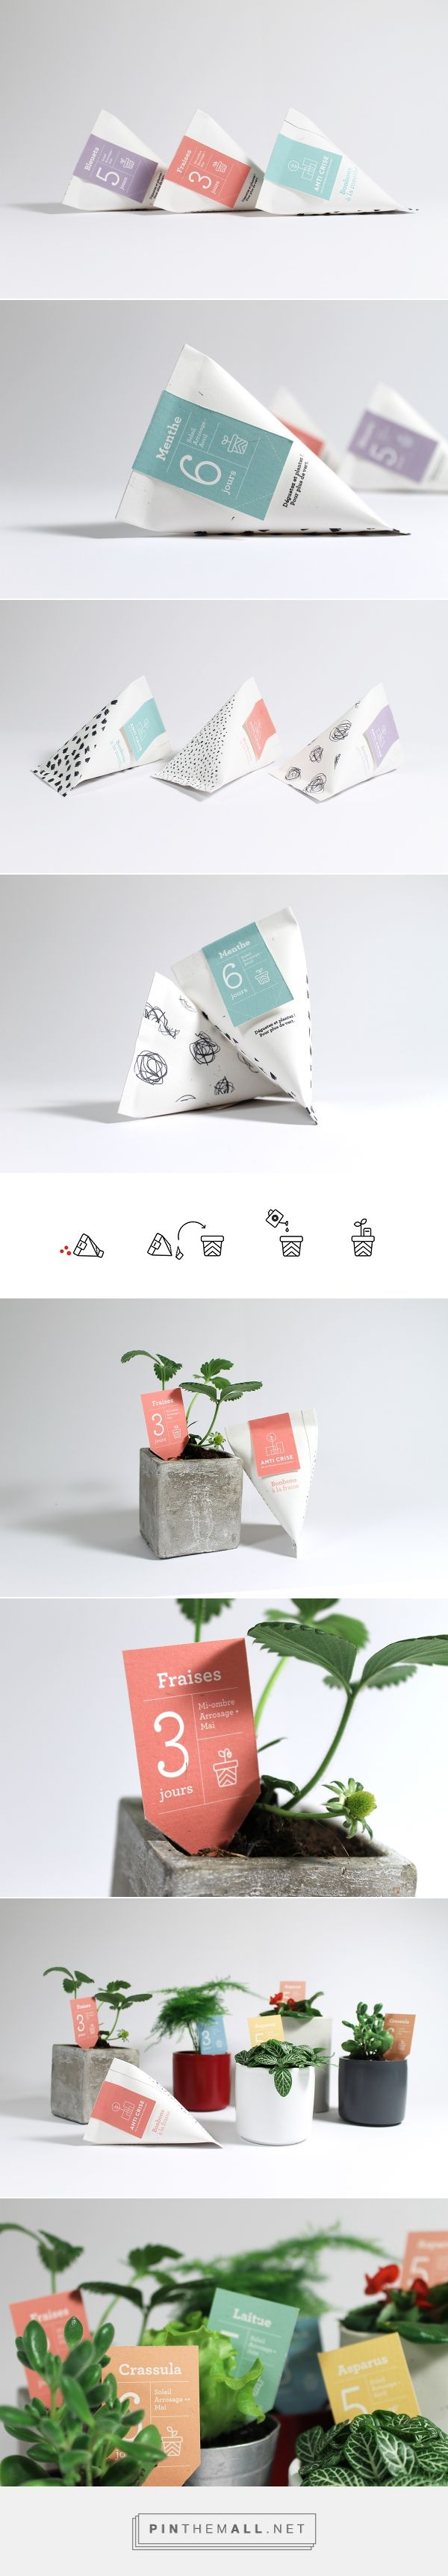 Anticrise seeds for indoor gardening designed by Julie Ferrieux. Pin curated by #SFields99 #packaging #design